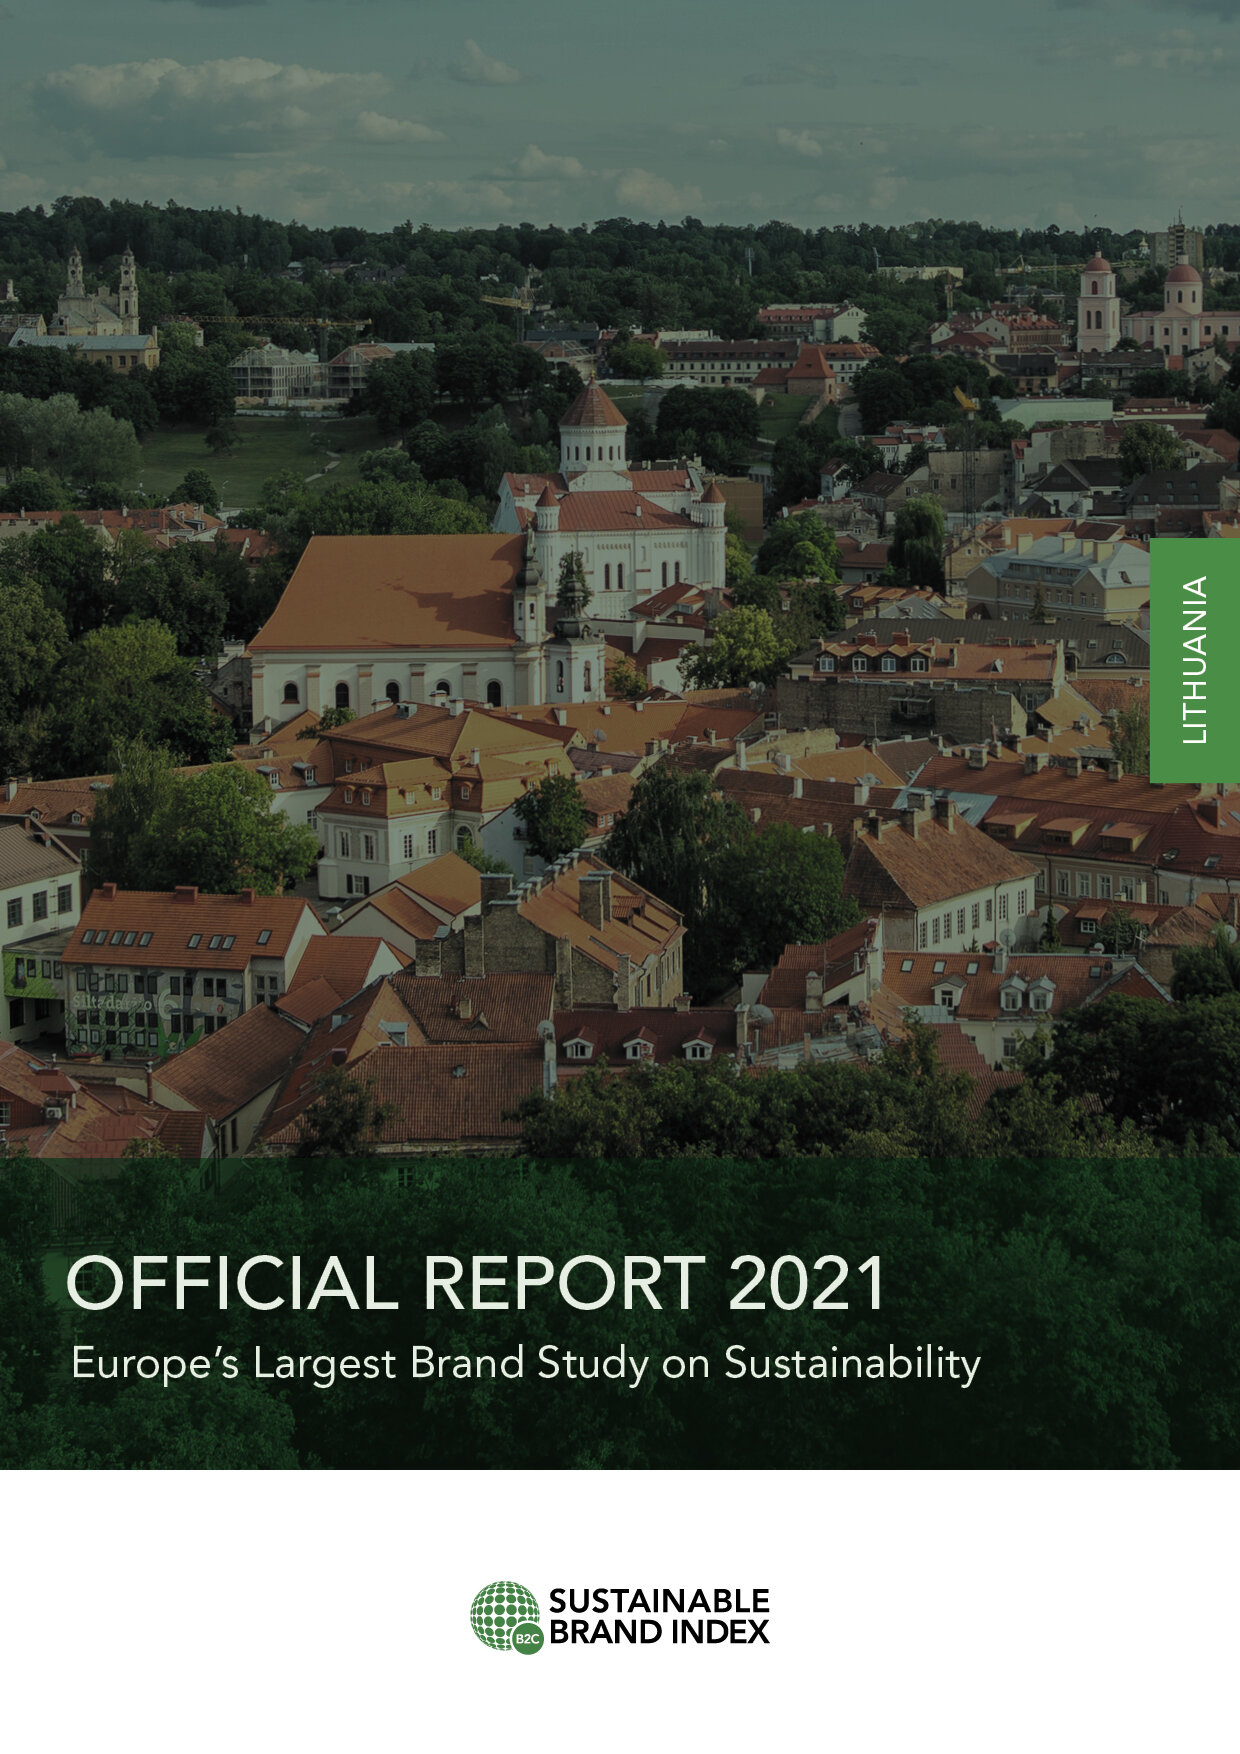 LT_Official Report_2021_Cover page.jpg